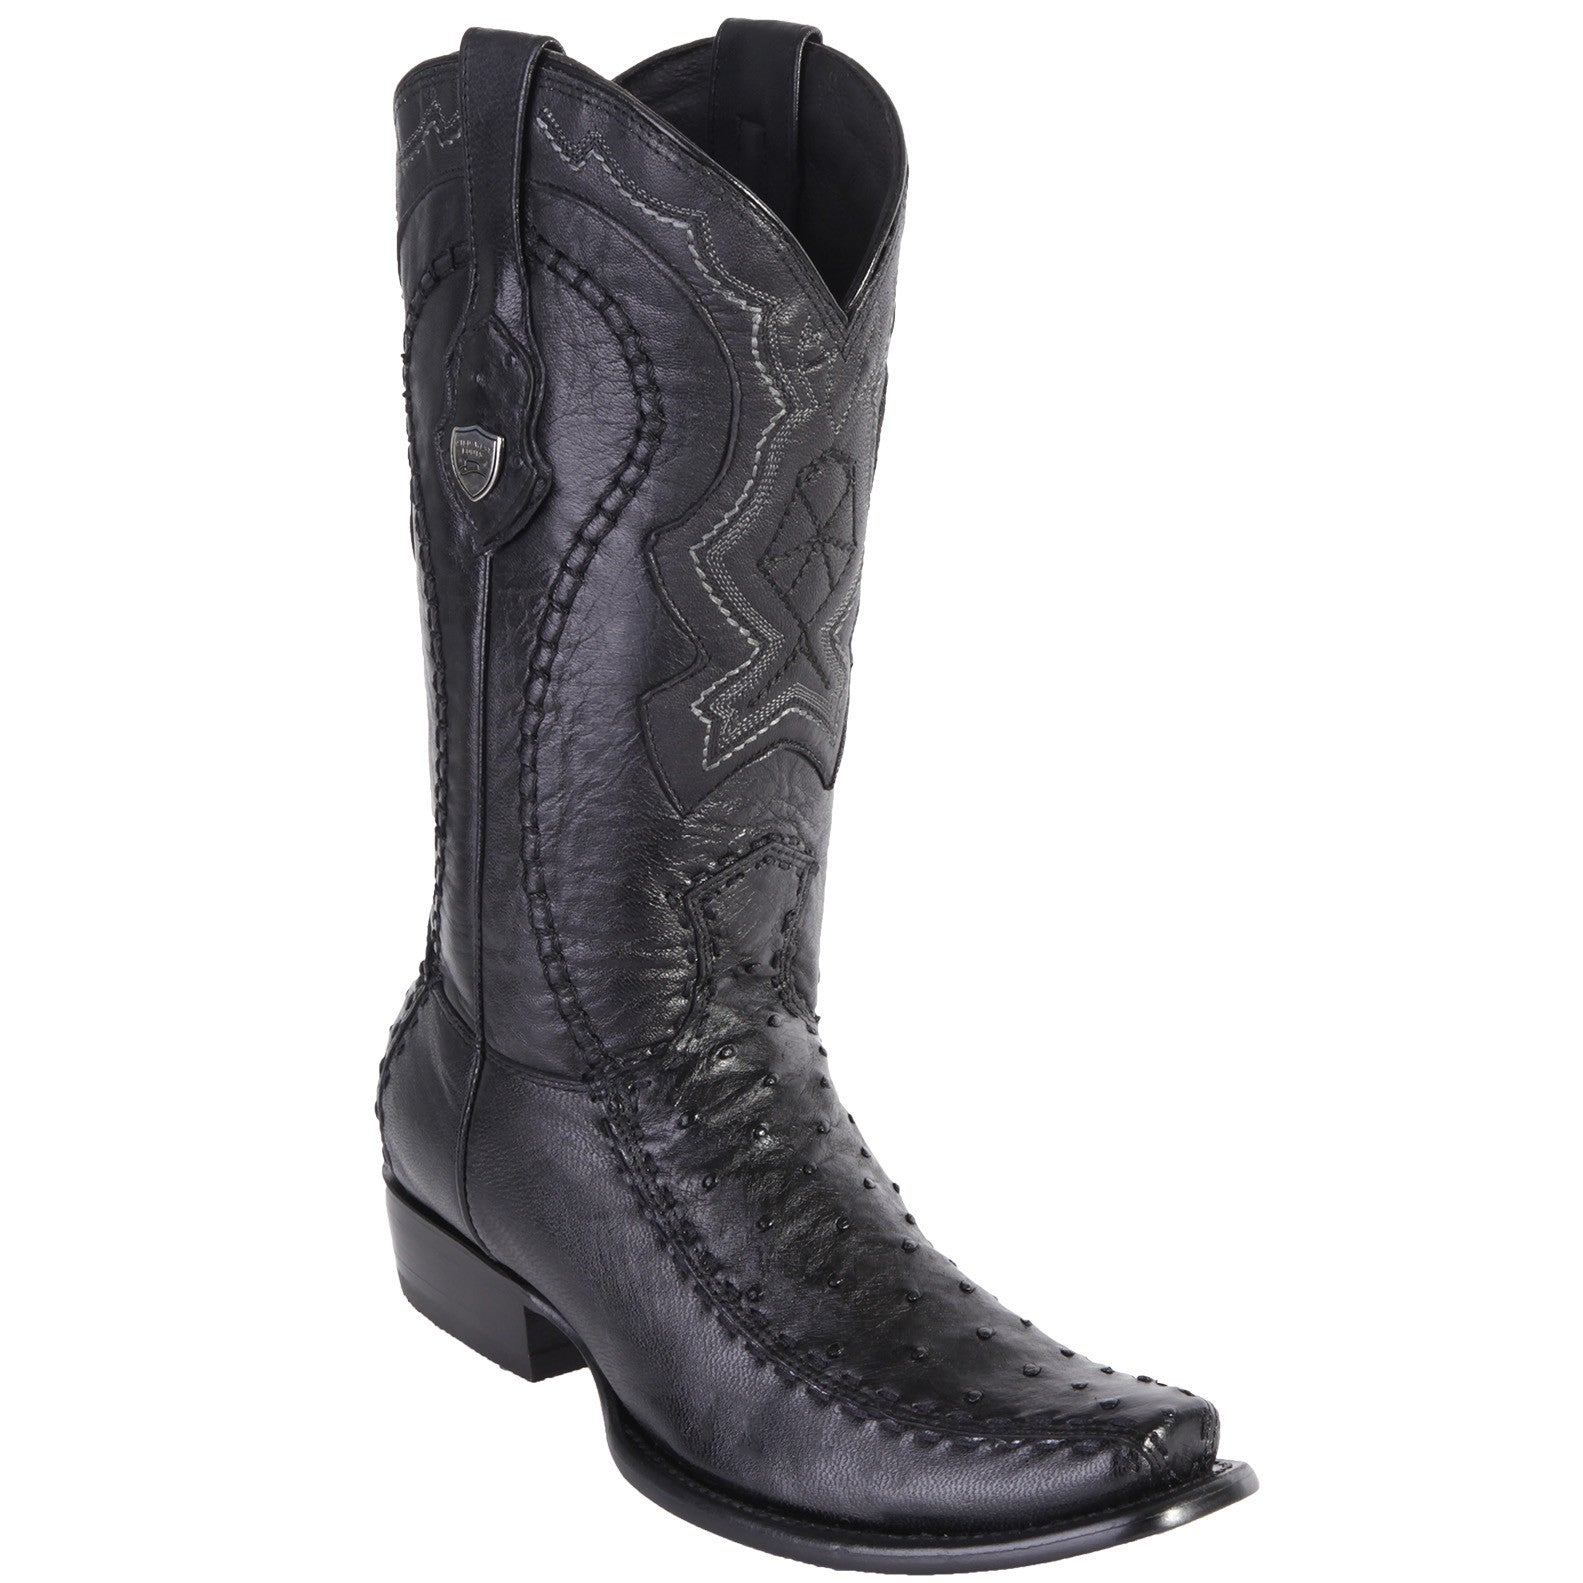 Wild West Men's Ostrich Stitched Dubai Toe Boots